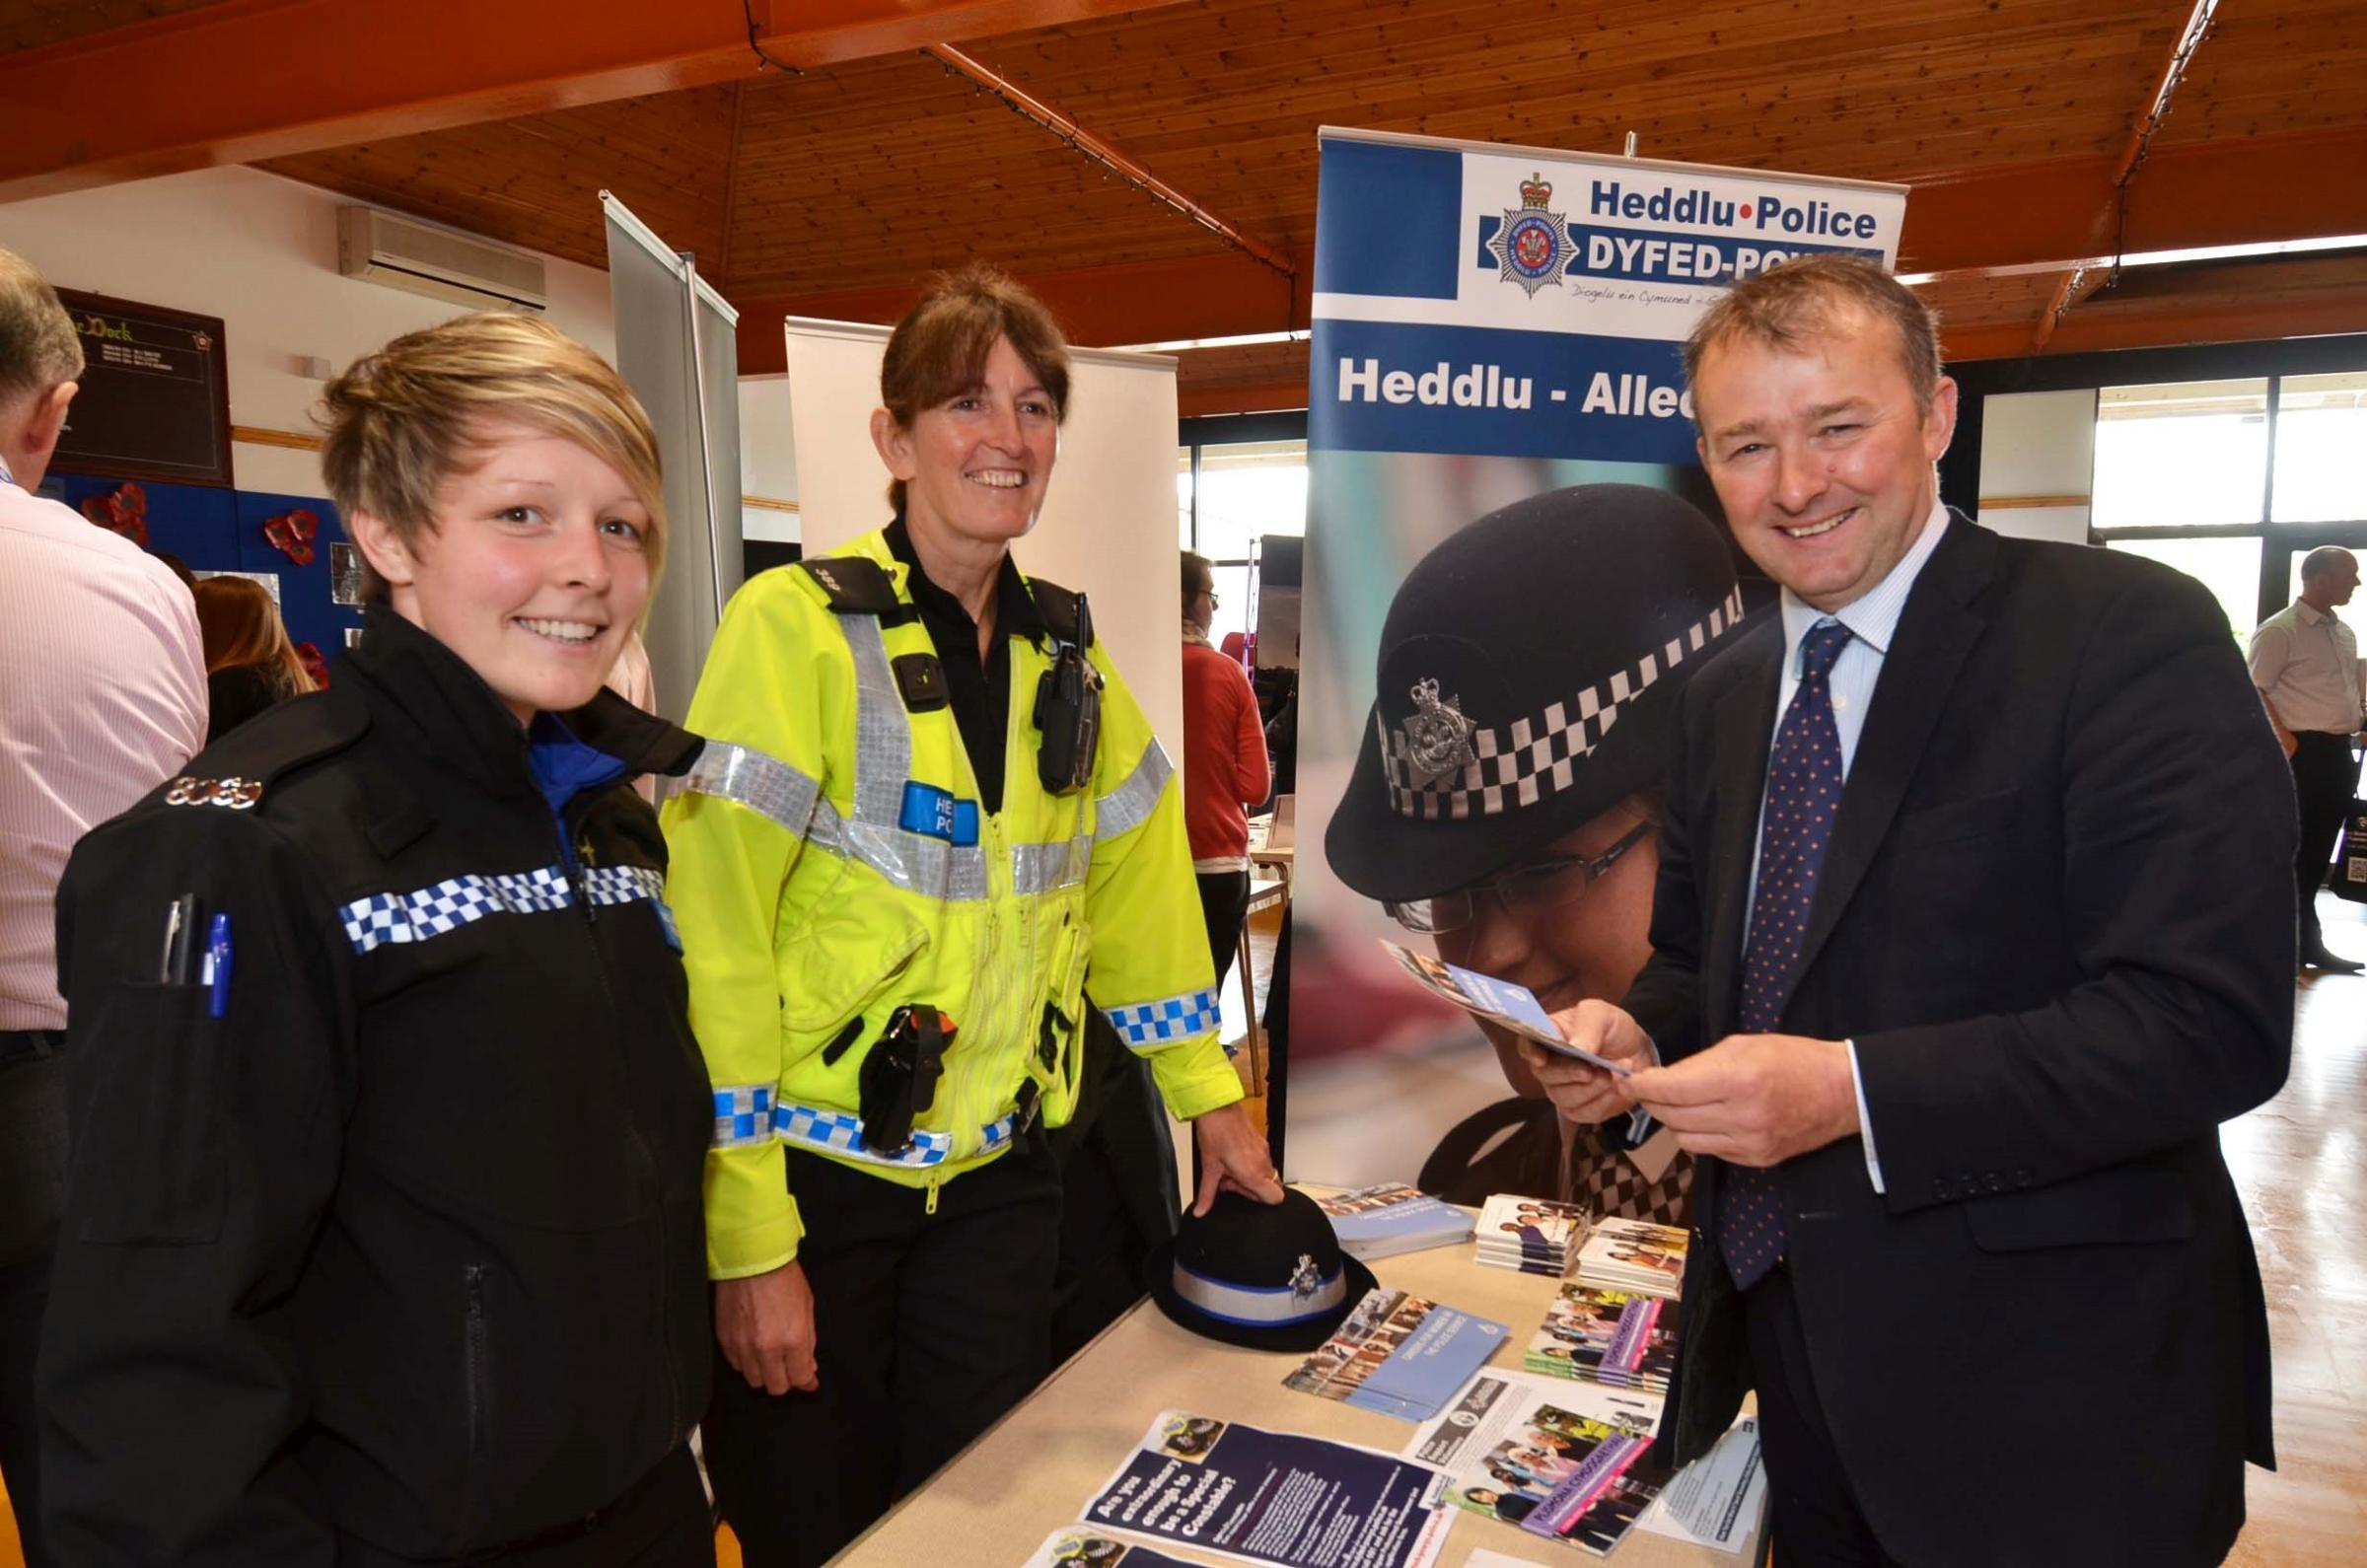 JOBS FAIR: Simon Hart MP talking to Hannah Francis and Alison Foley at the Dyfed-Powys Police stand.  PICTURE: Martin Cavaney.   (614